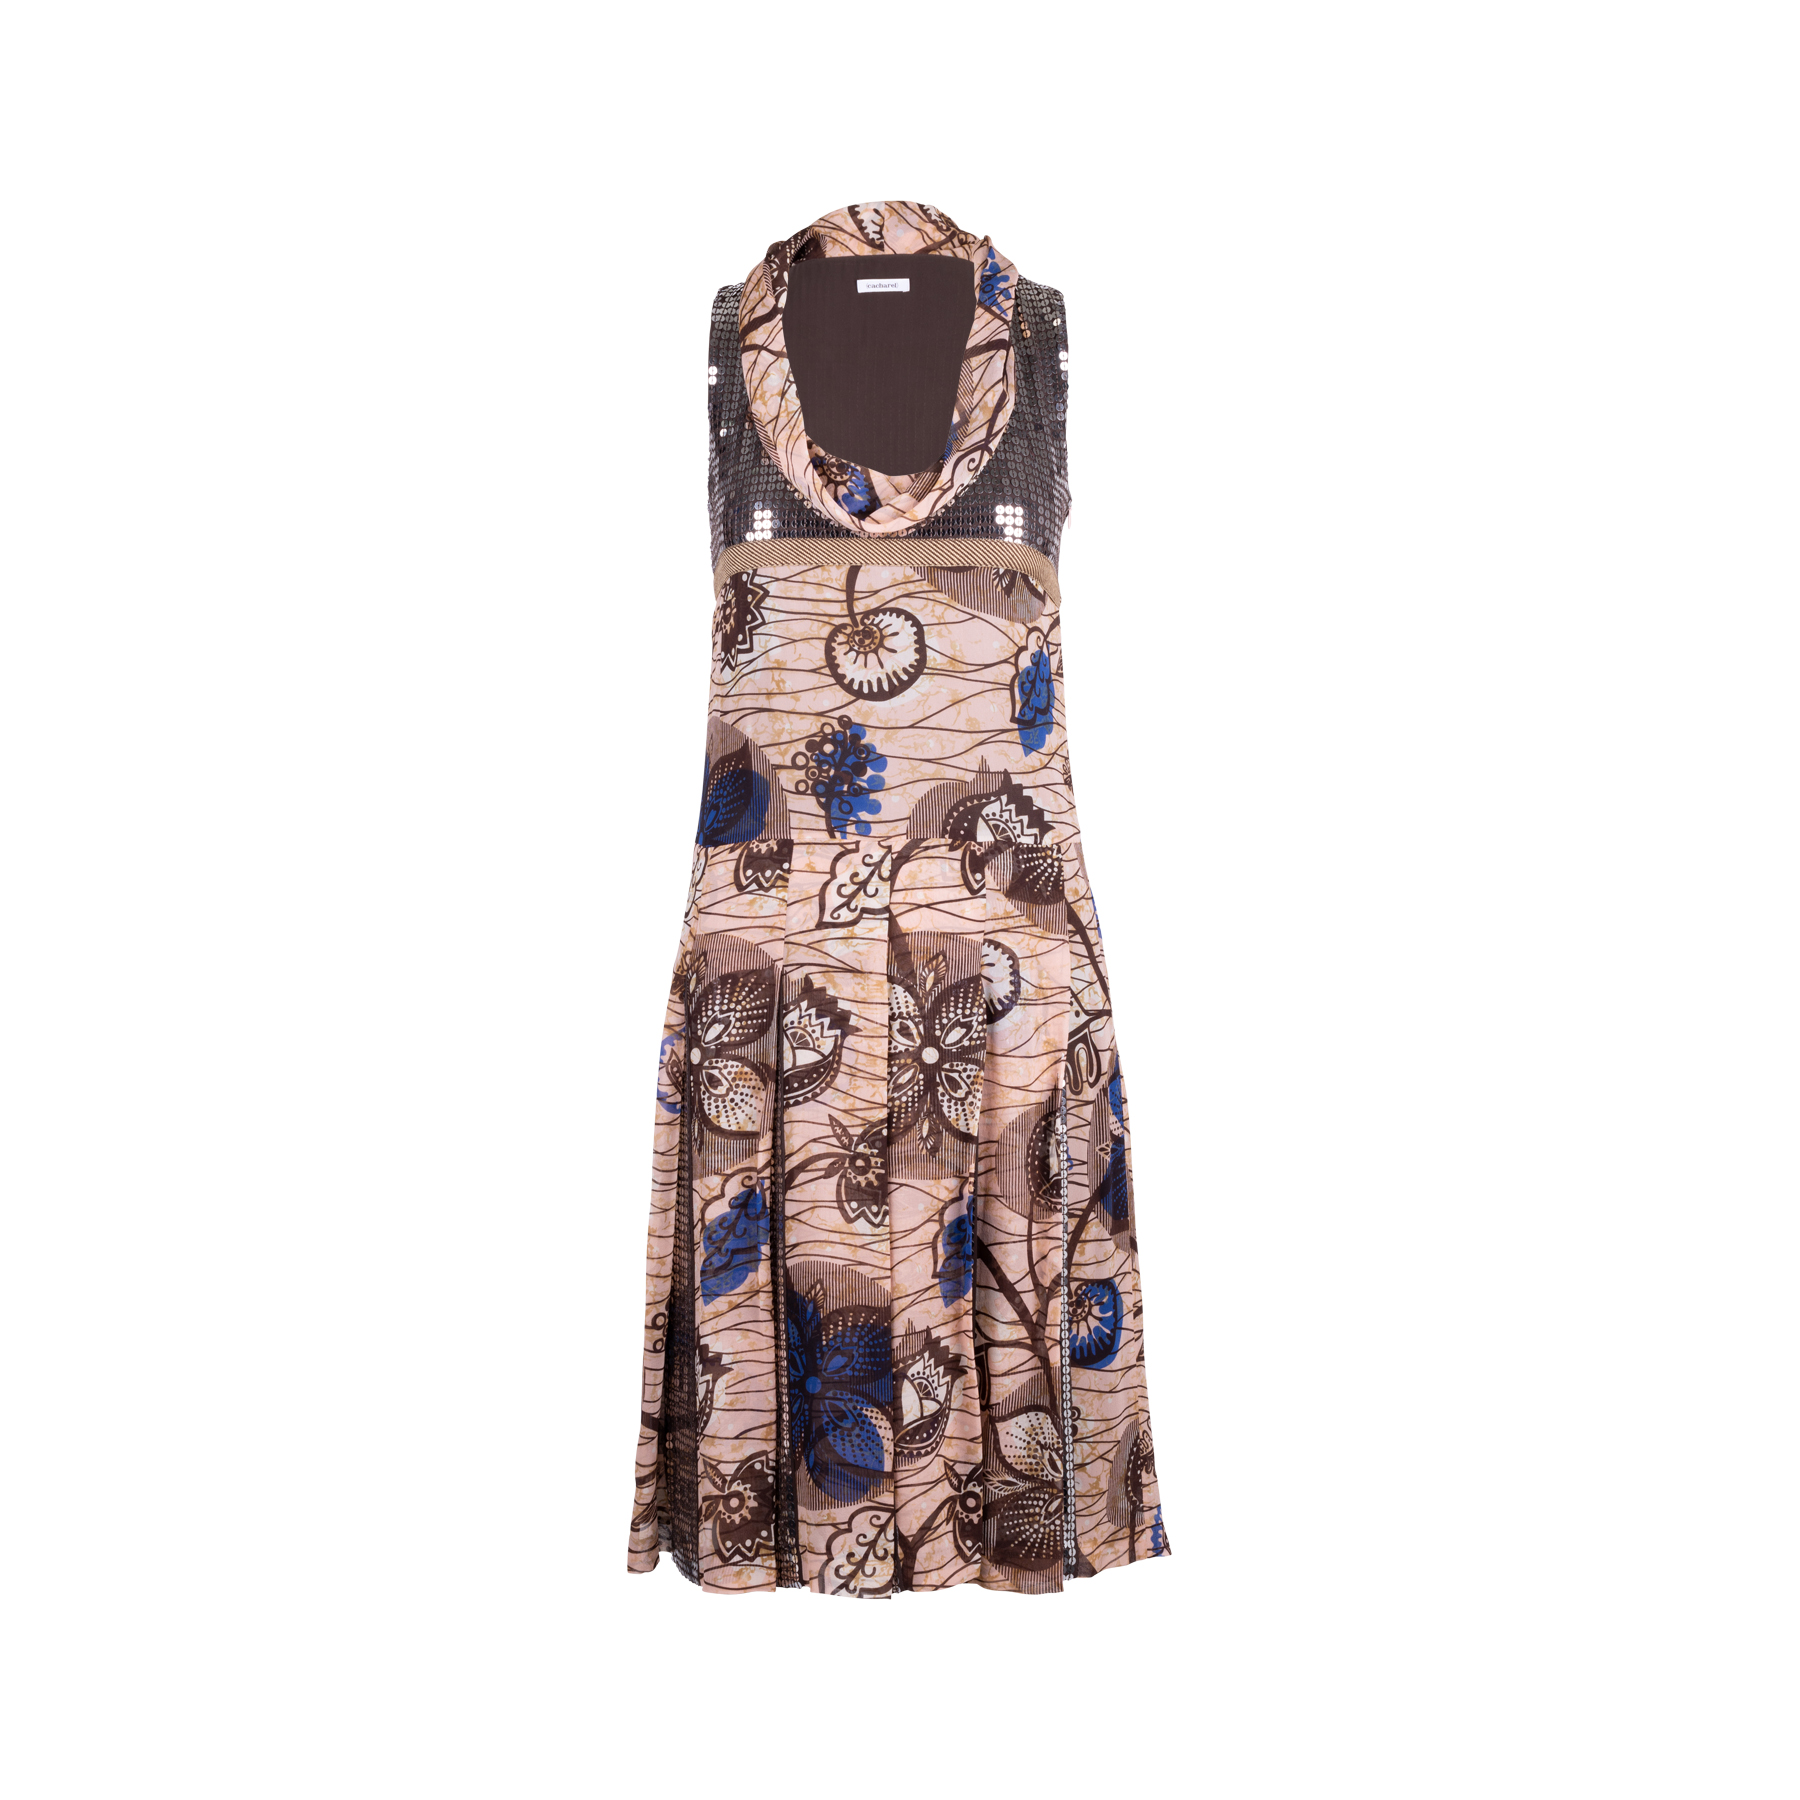 7febc3ad359 Authentic Second Hand Cacharel Printed Sequin Embellished Dress  (PSS-340-00127) - THE FIFTH COLLECTION